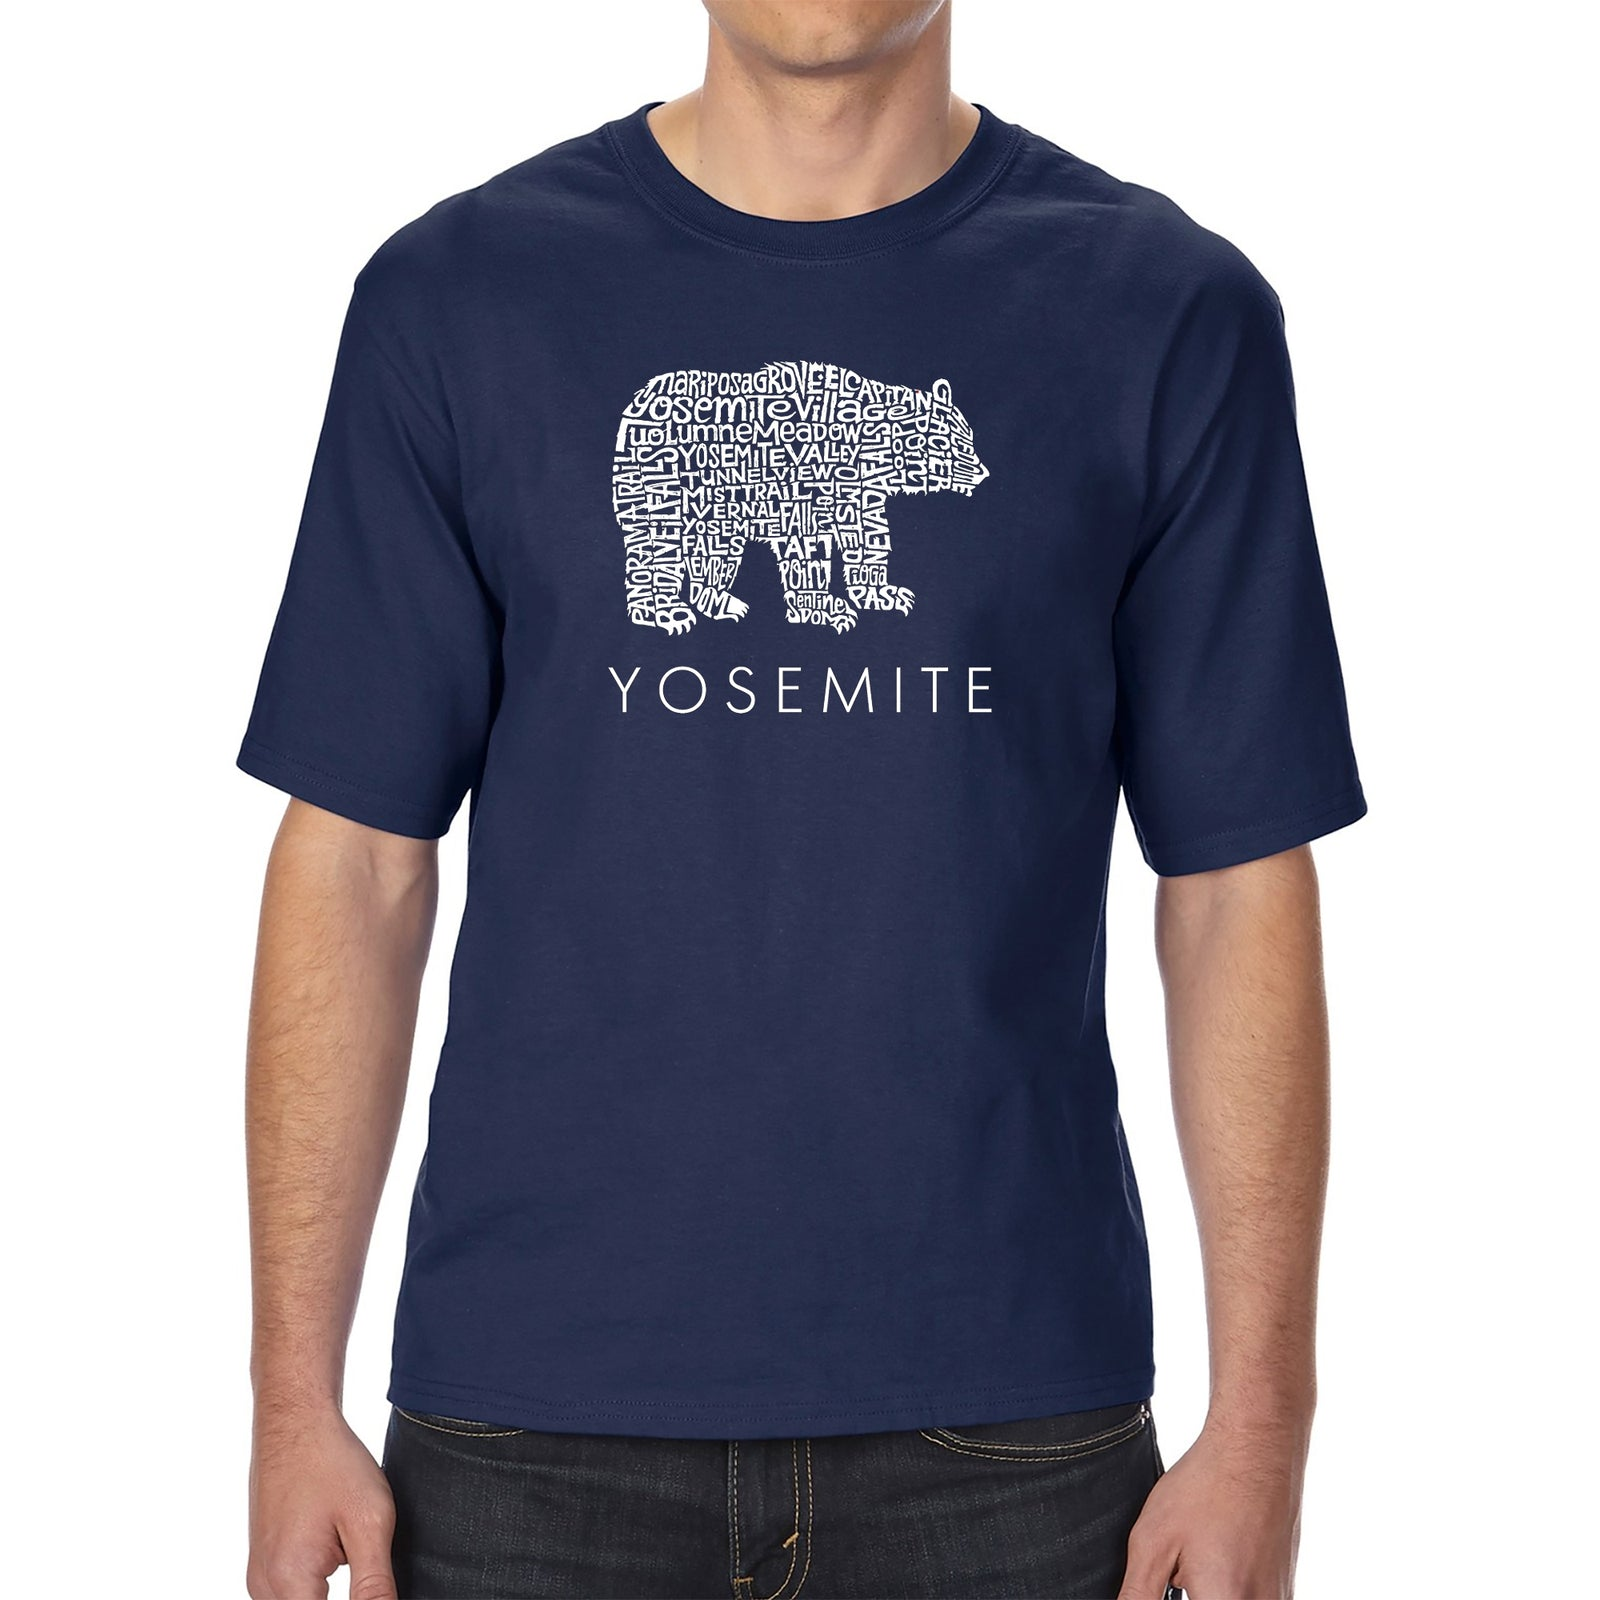 Men's Tall and Long Word Art T-shirt - Yosemite Bear